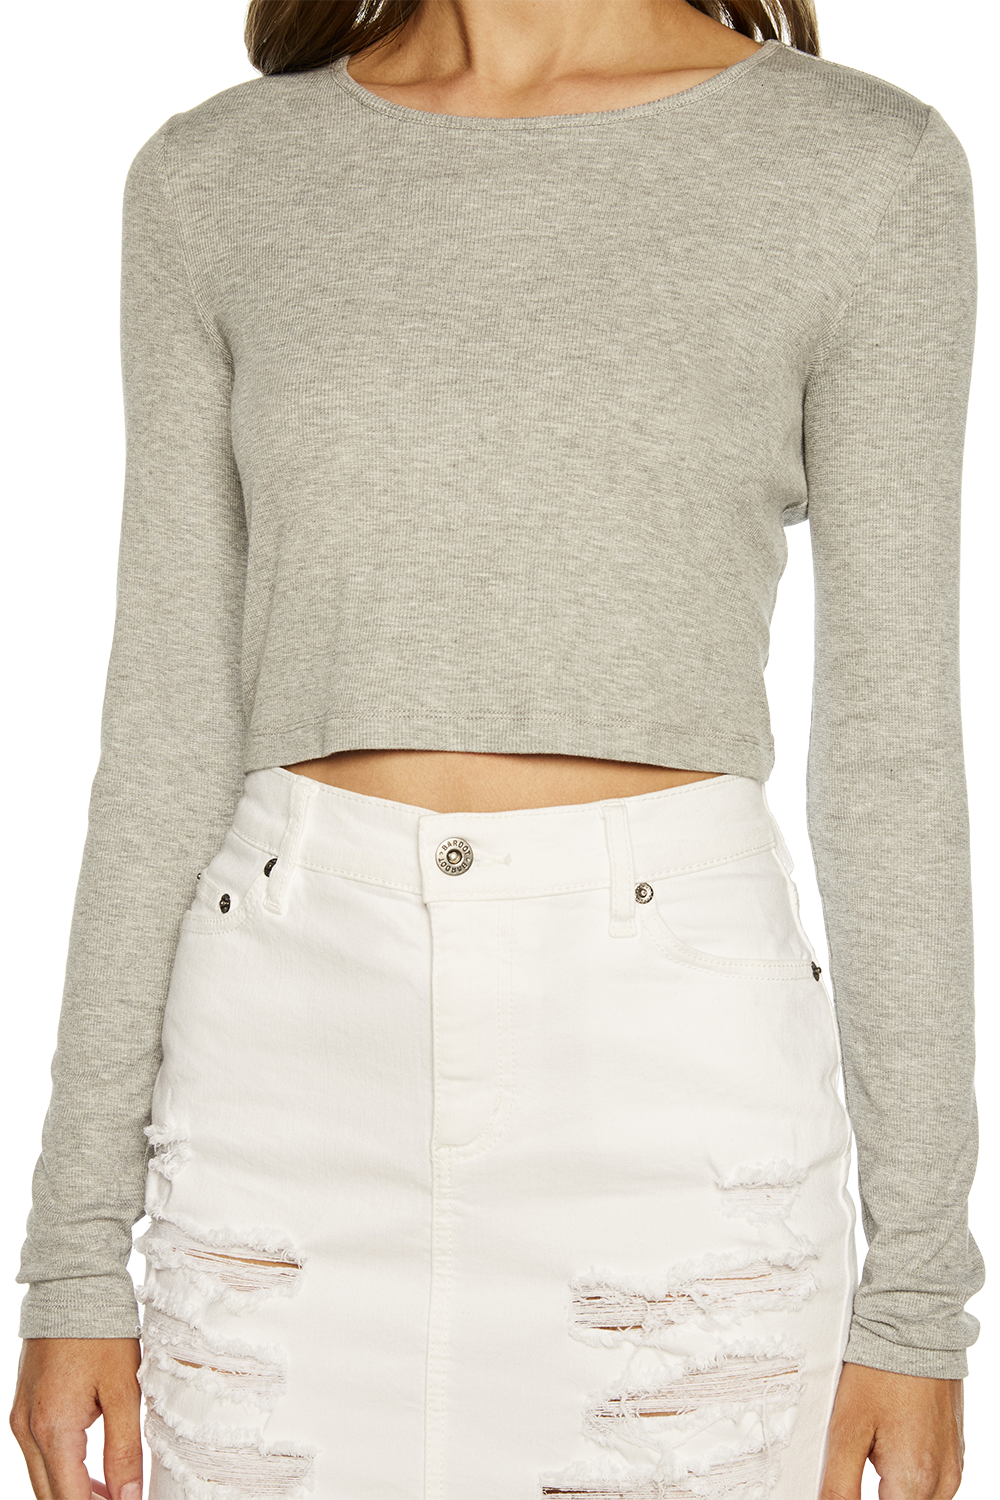 CROP LONG SLEEVE RIB TOP in colour PALOMA